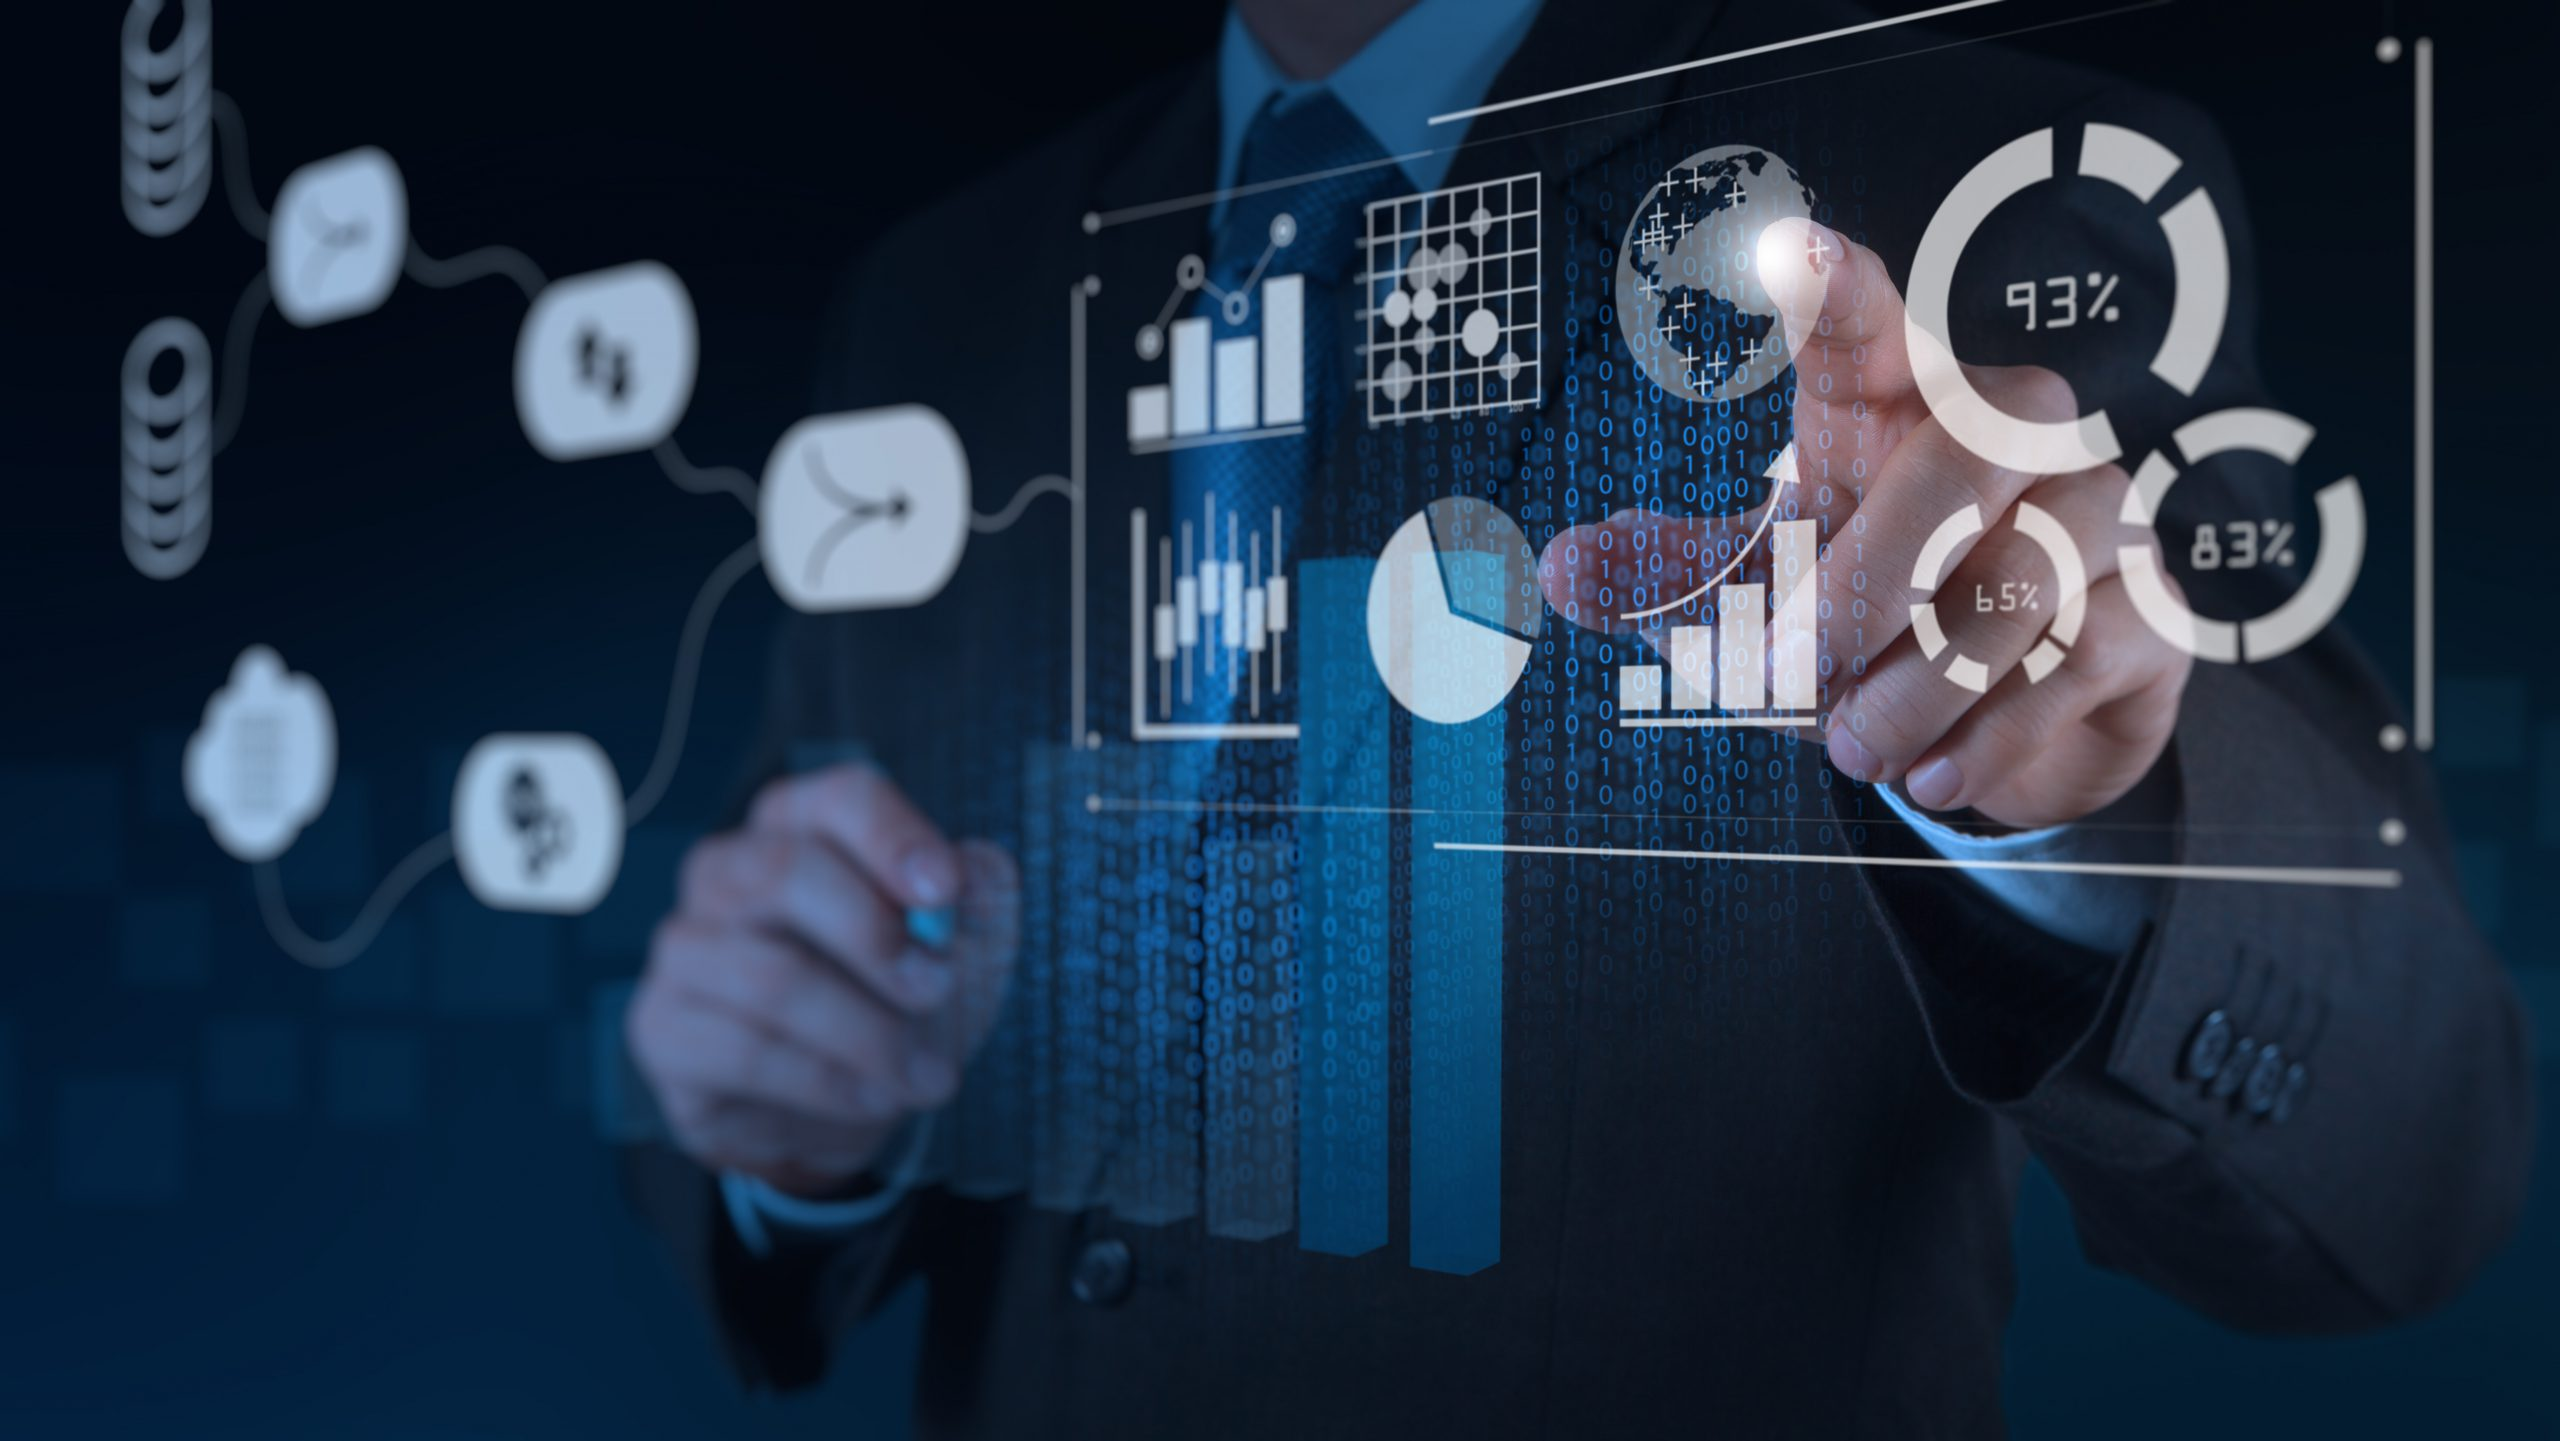 Data Management System (DMS) with Business Analytics concept. businessman working with provide information for Key Performance Indicators (KPI) and marketing analysis on virtual computer